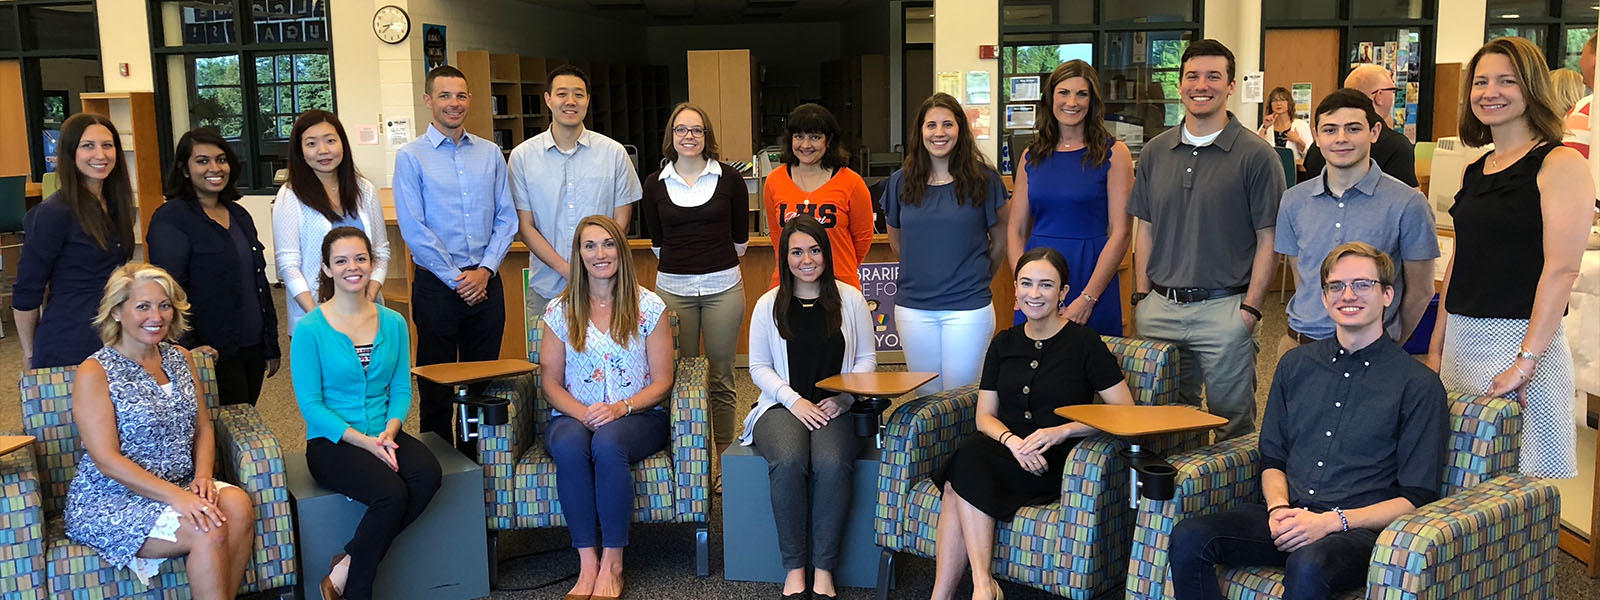 VHHS Welcomes New Staff